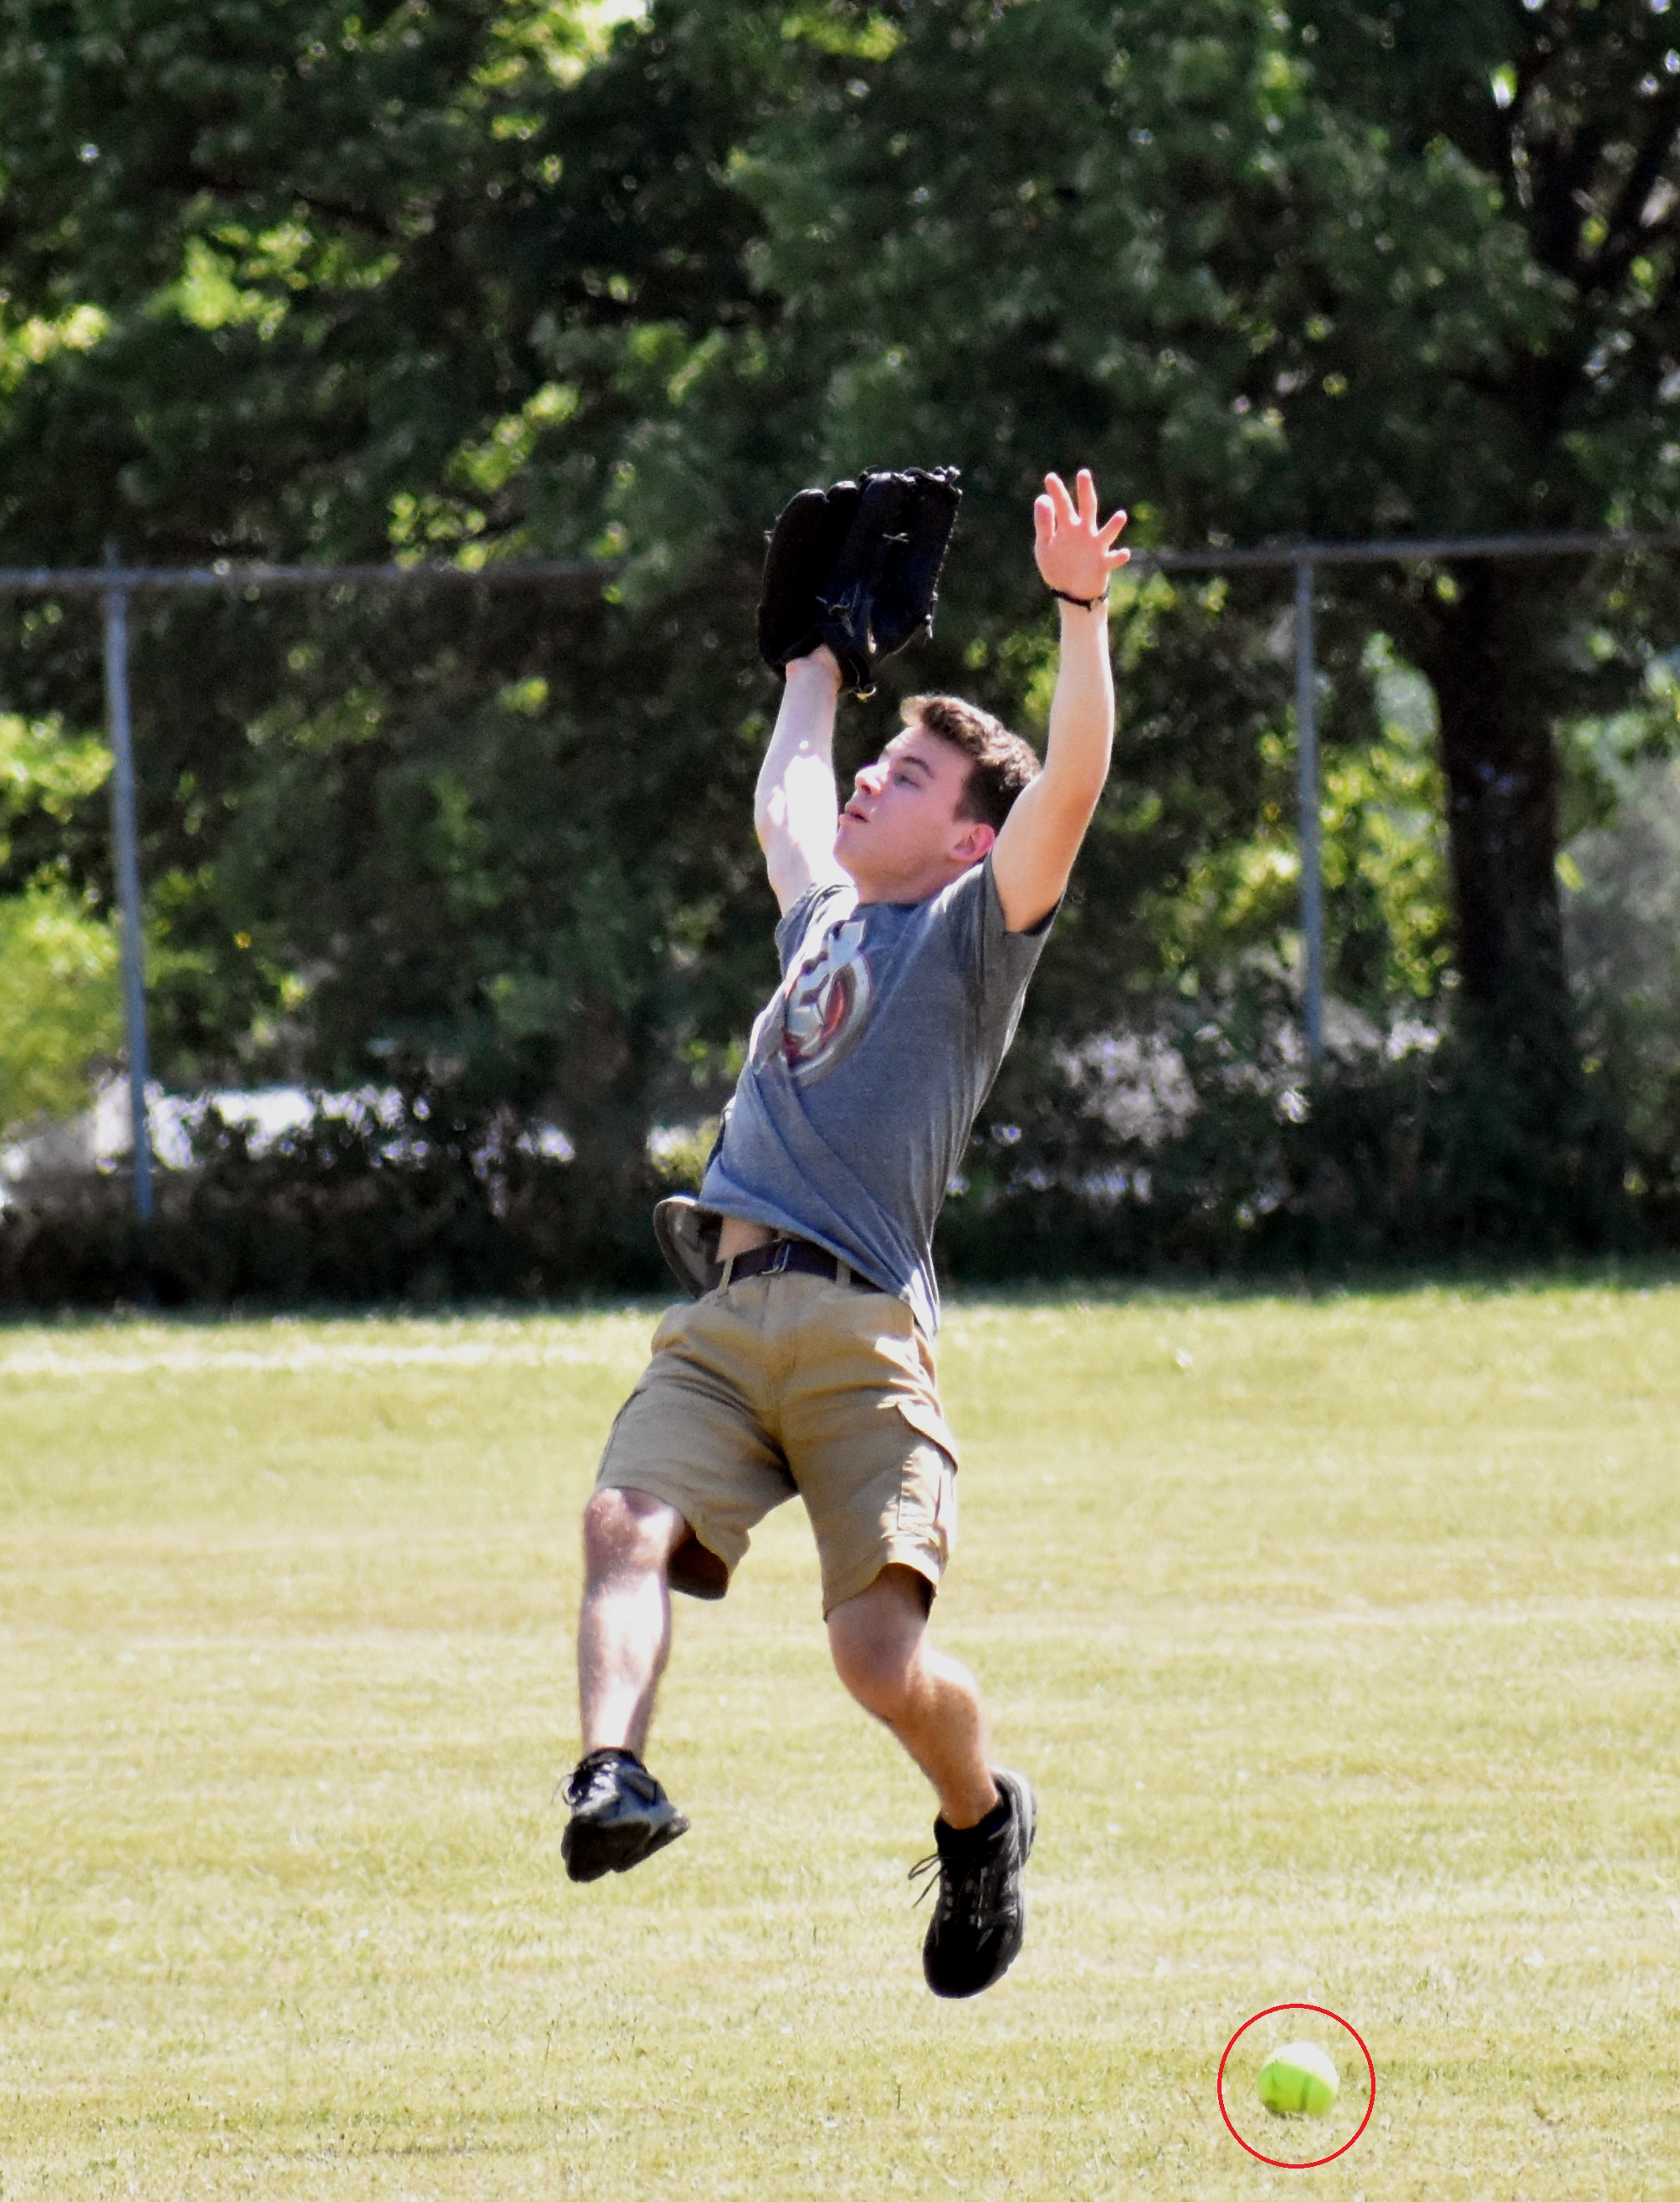 young male player jumping to catch ball